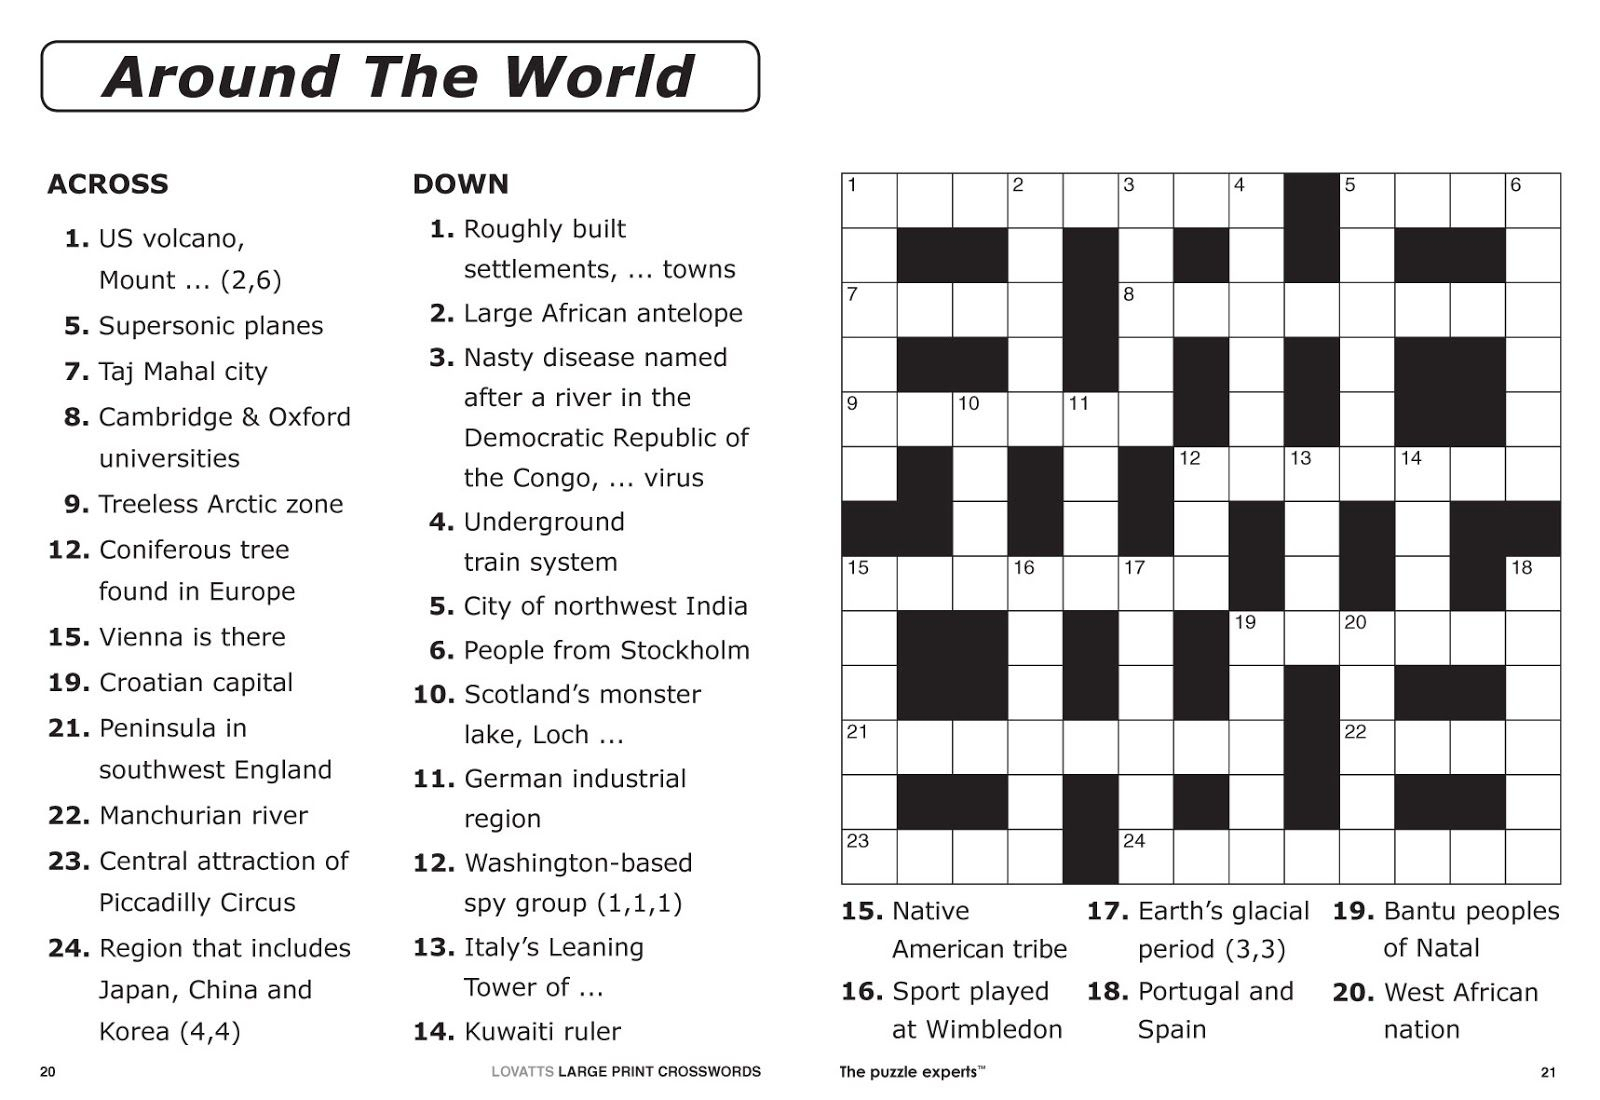 Free Printable Large Print Crossword Puzzles | M3U8 - Printable Crossword Puzzles For Beginners